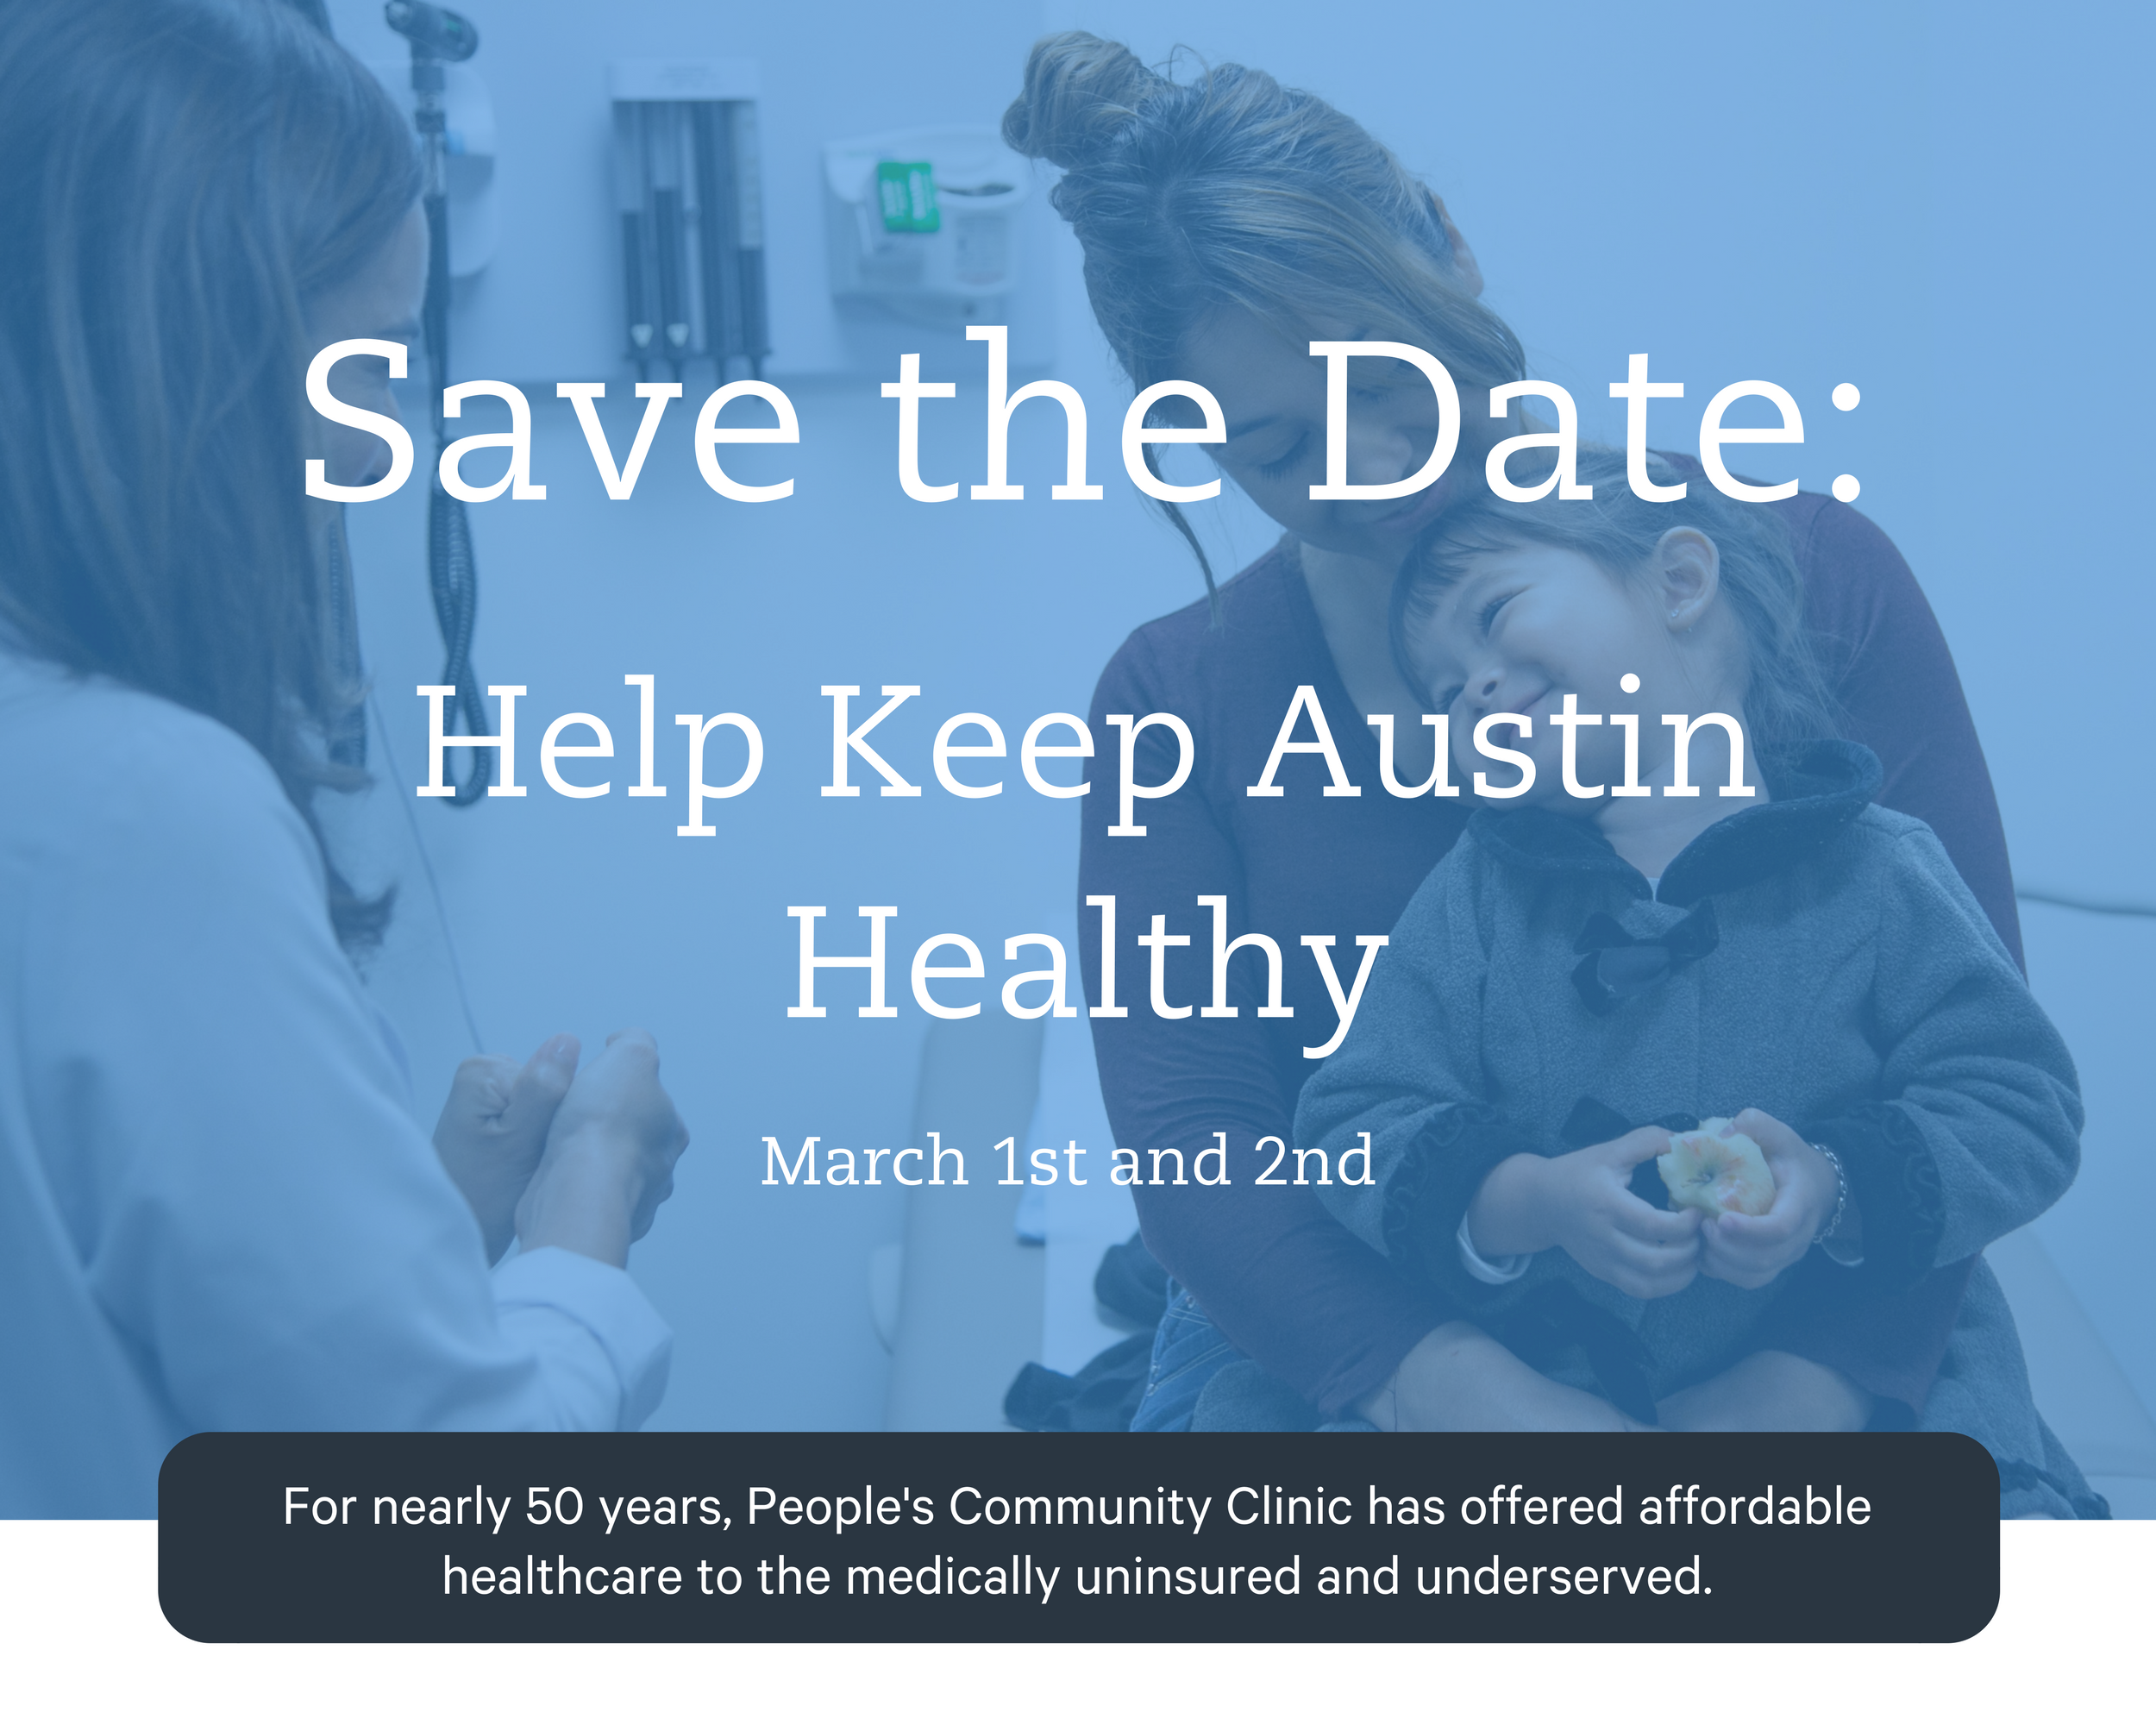 Save the Date: Help Keep Austin Healthy